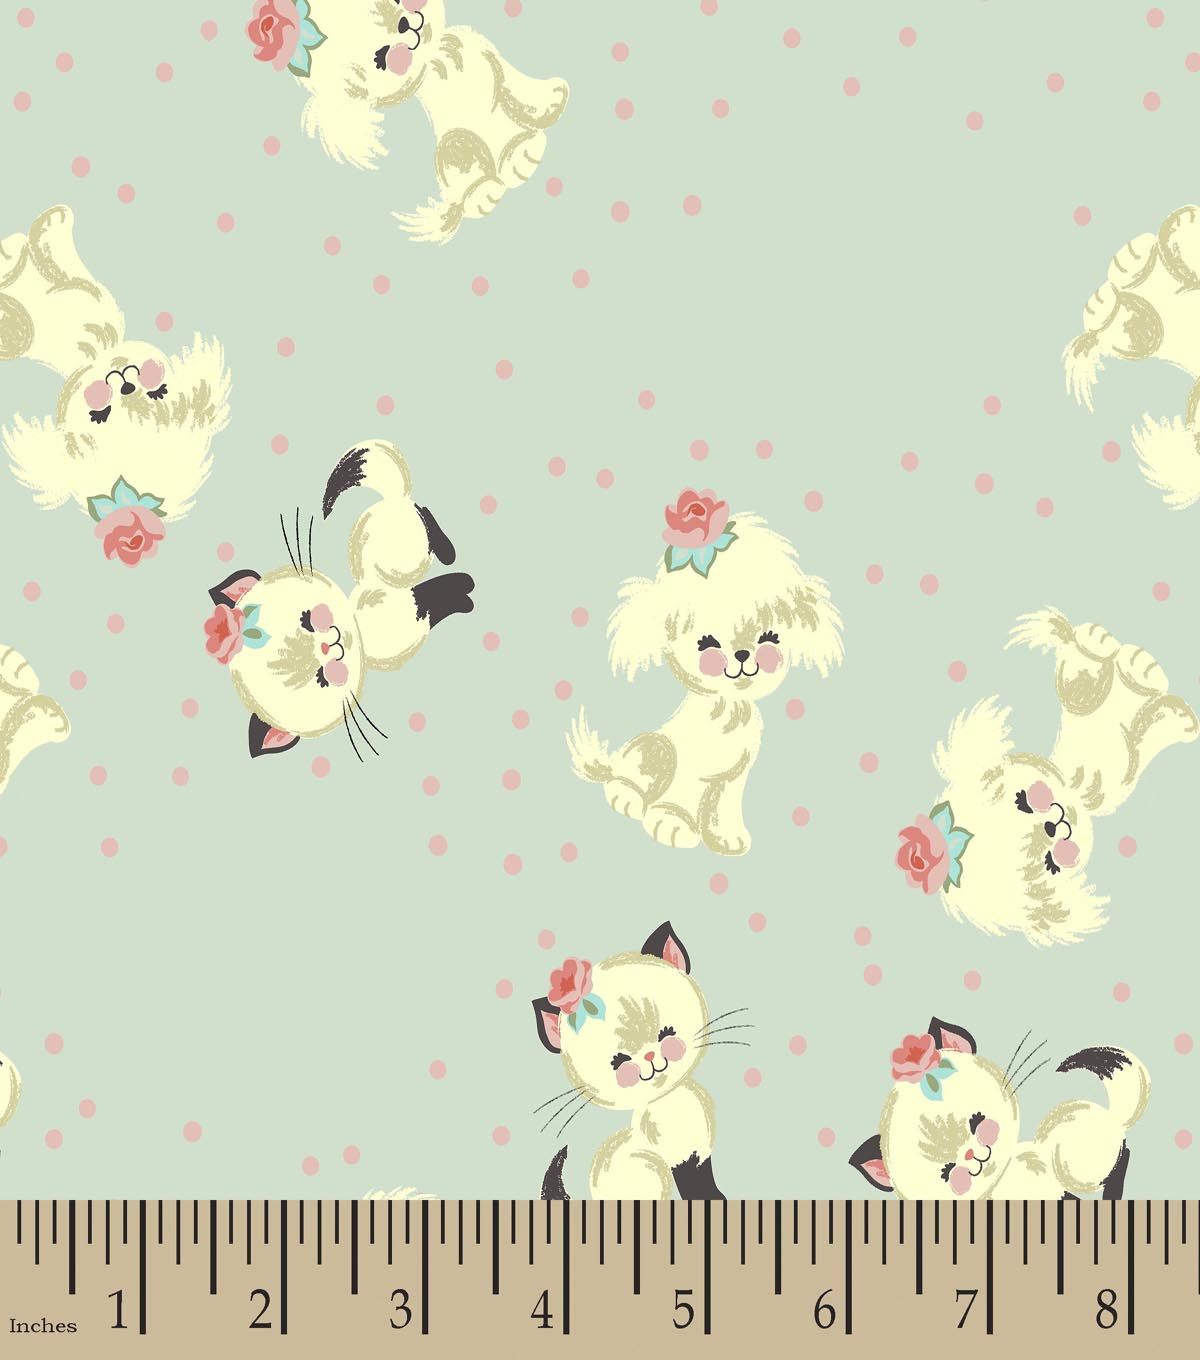 Cutie Pie Kitty and Puppy Print Fabric